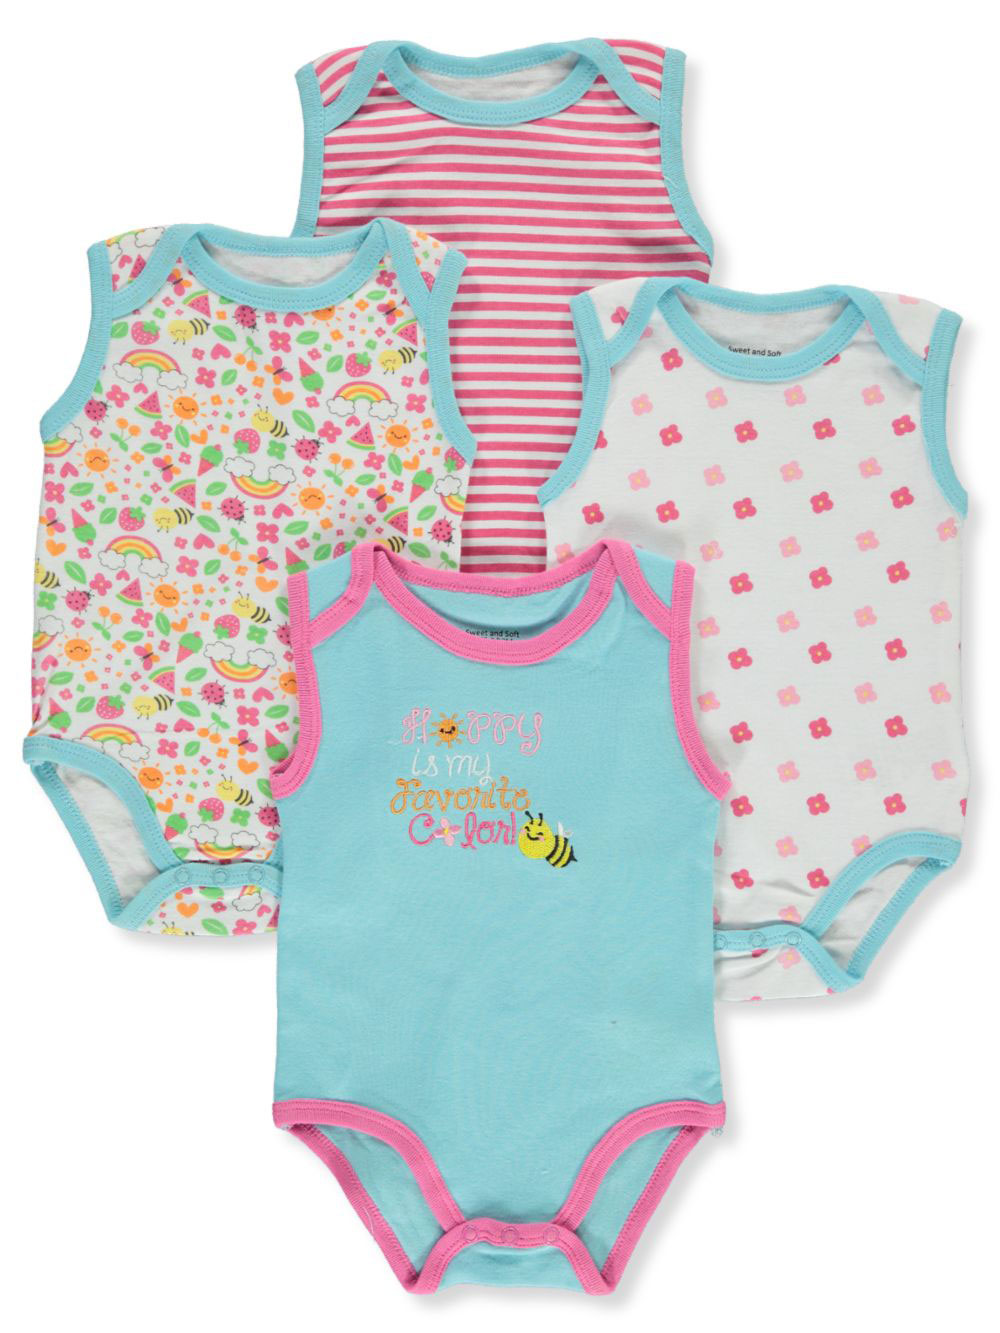 Baby Girls' 4-Pack Bodysuits